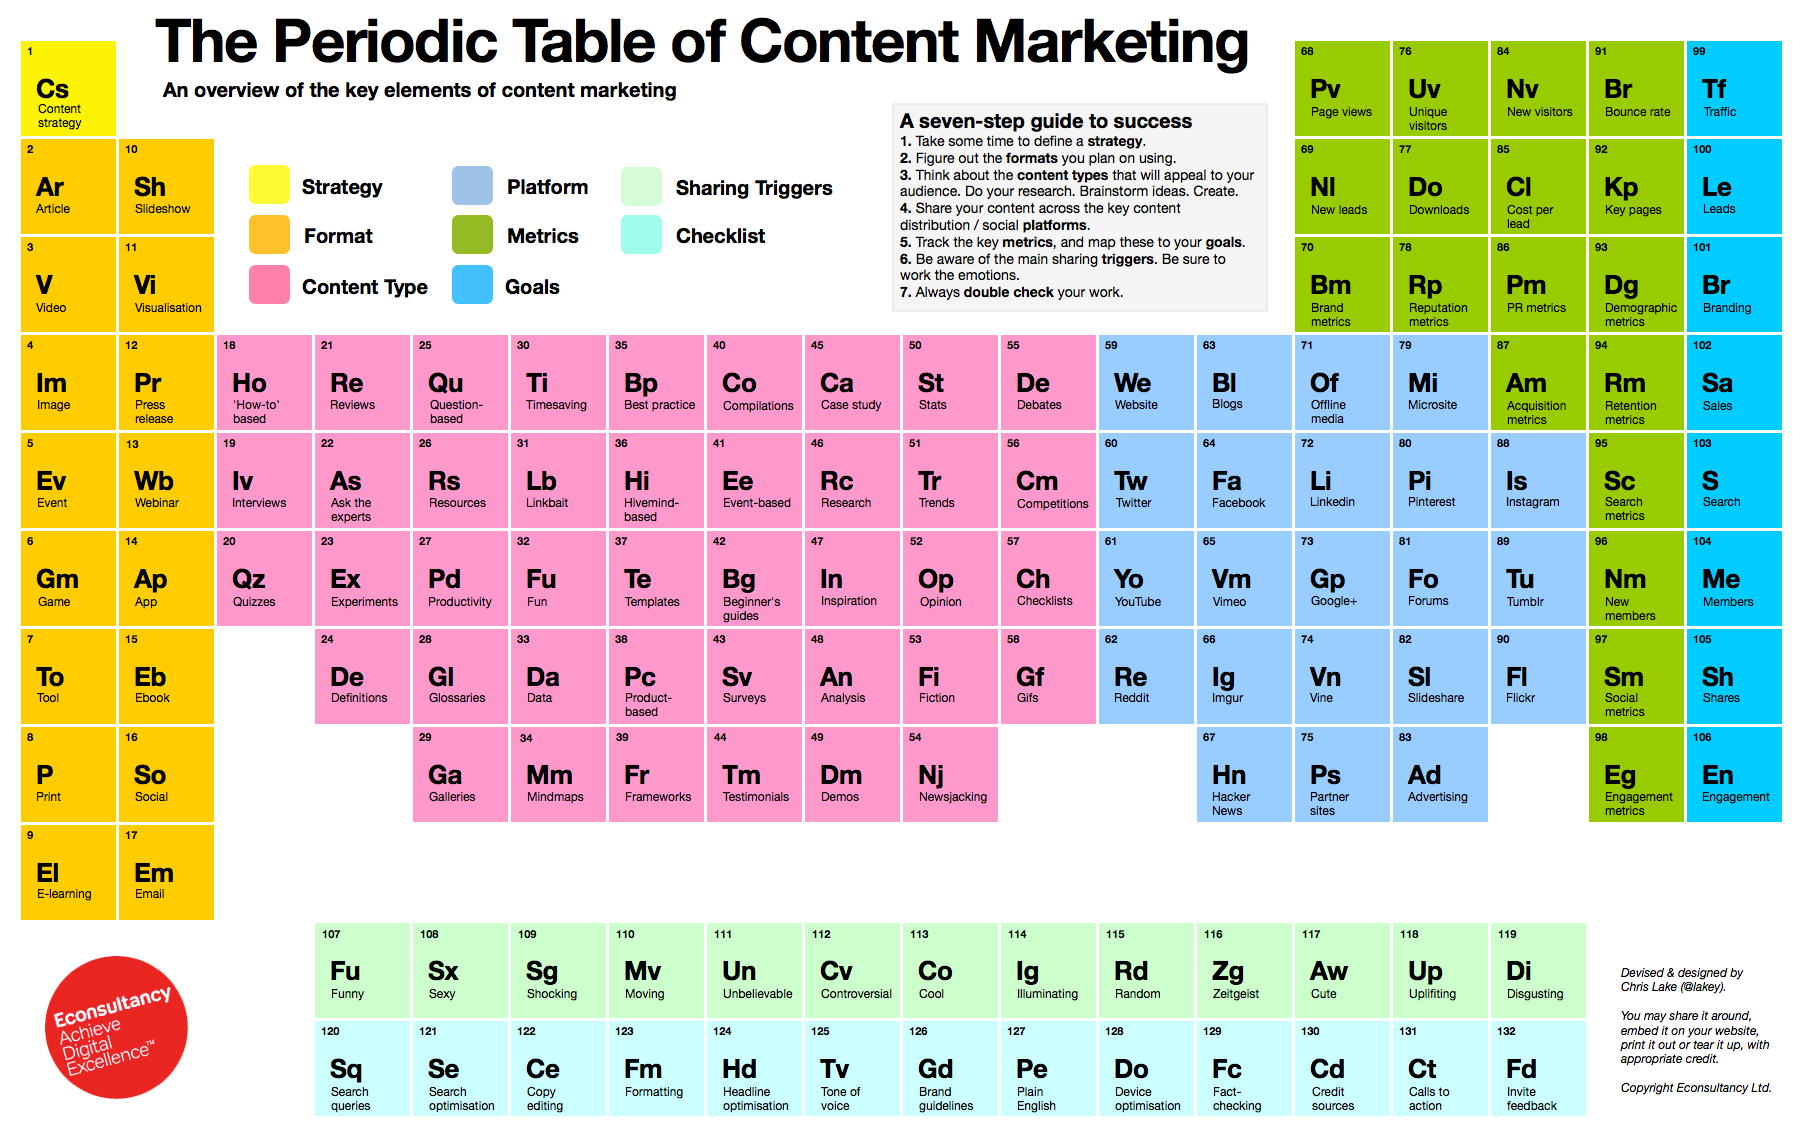 The_Periodic_Table_of_Content_Marketing copy